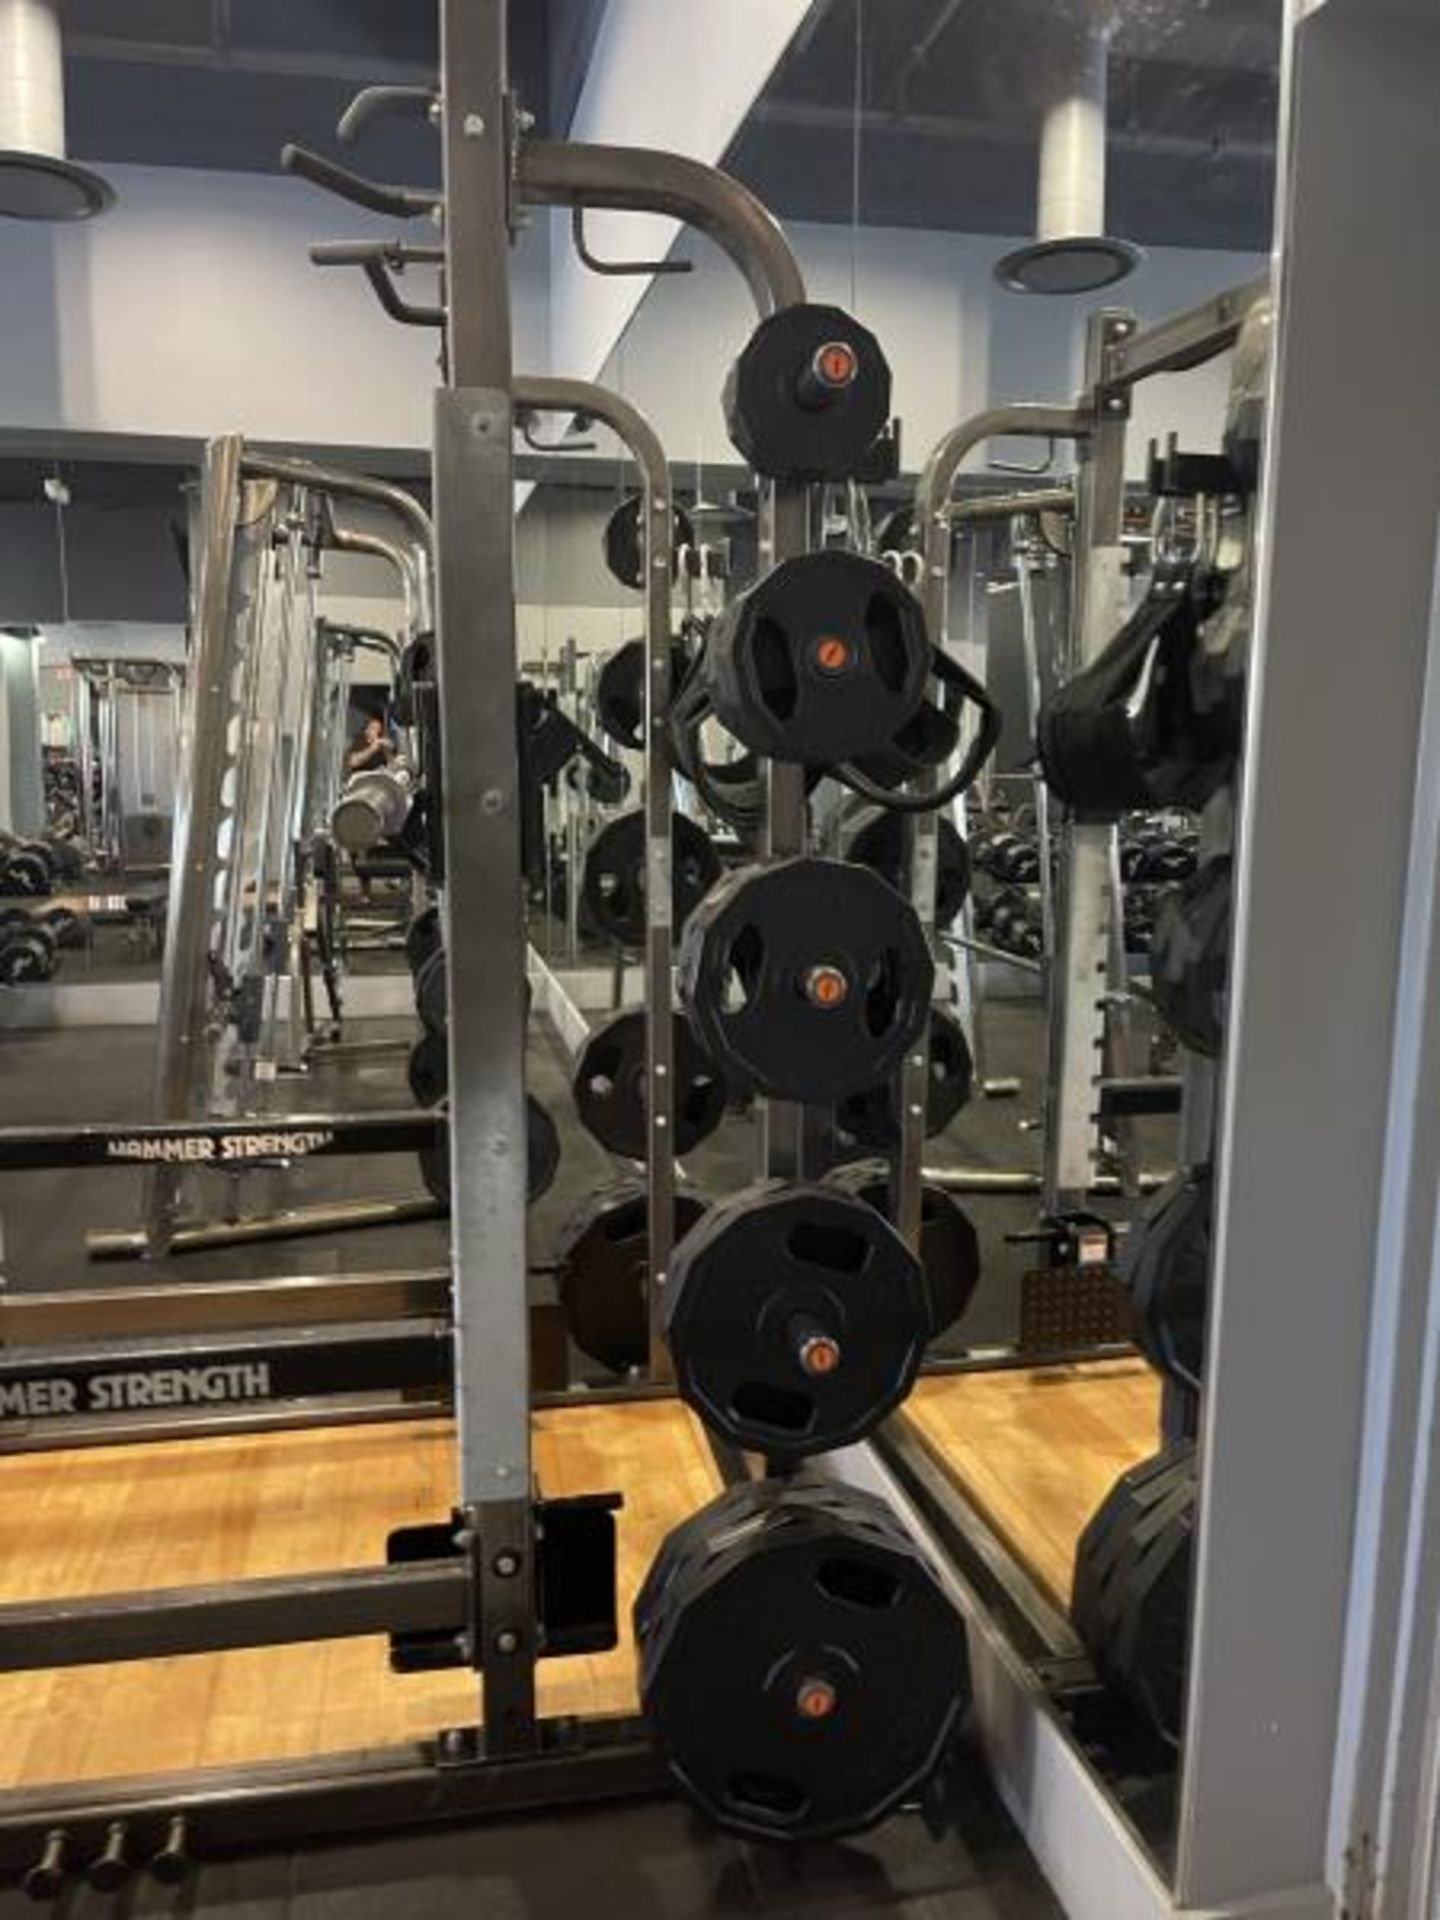 Hammer Strength with Wood Floor, Rack, Iron Grip Weight Plates M: HDMR8/B01 - Image 5 of 7